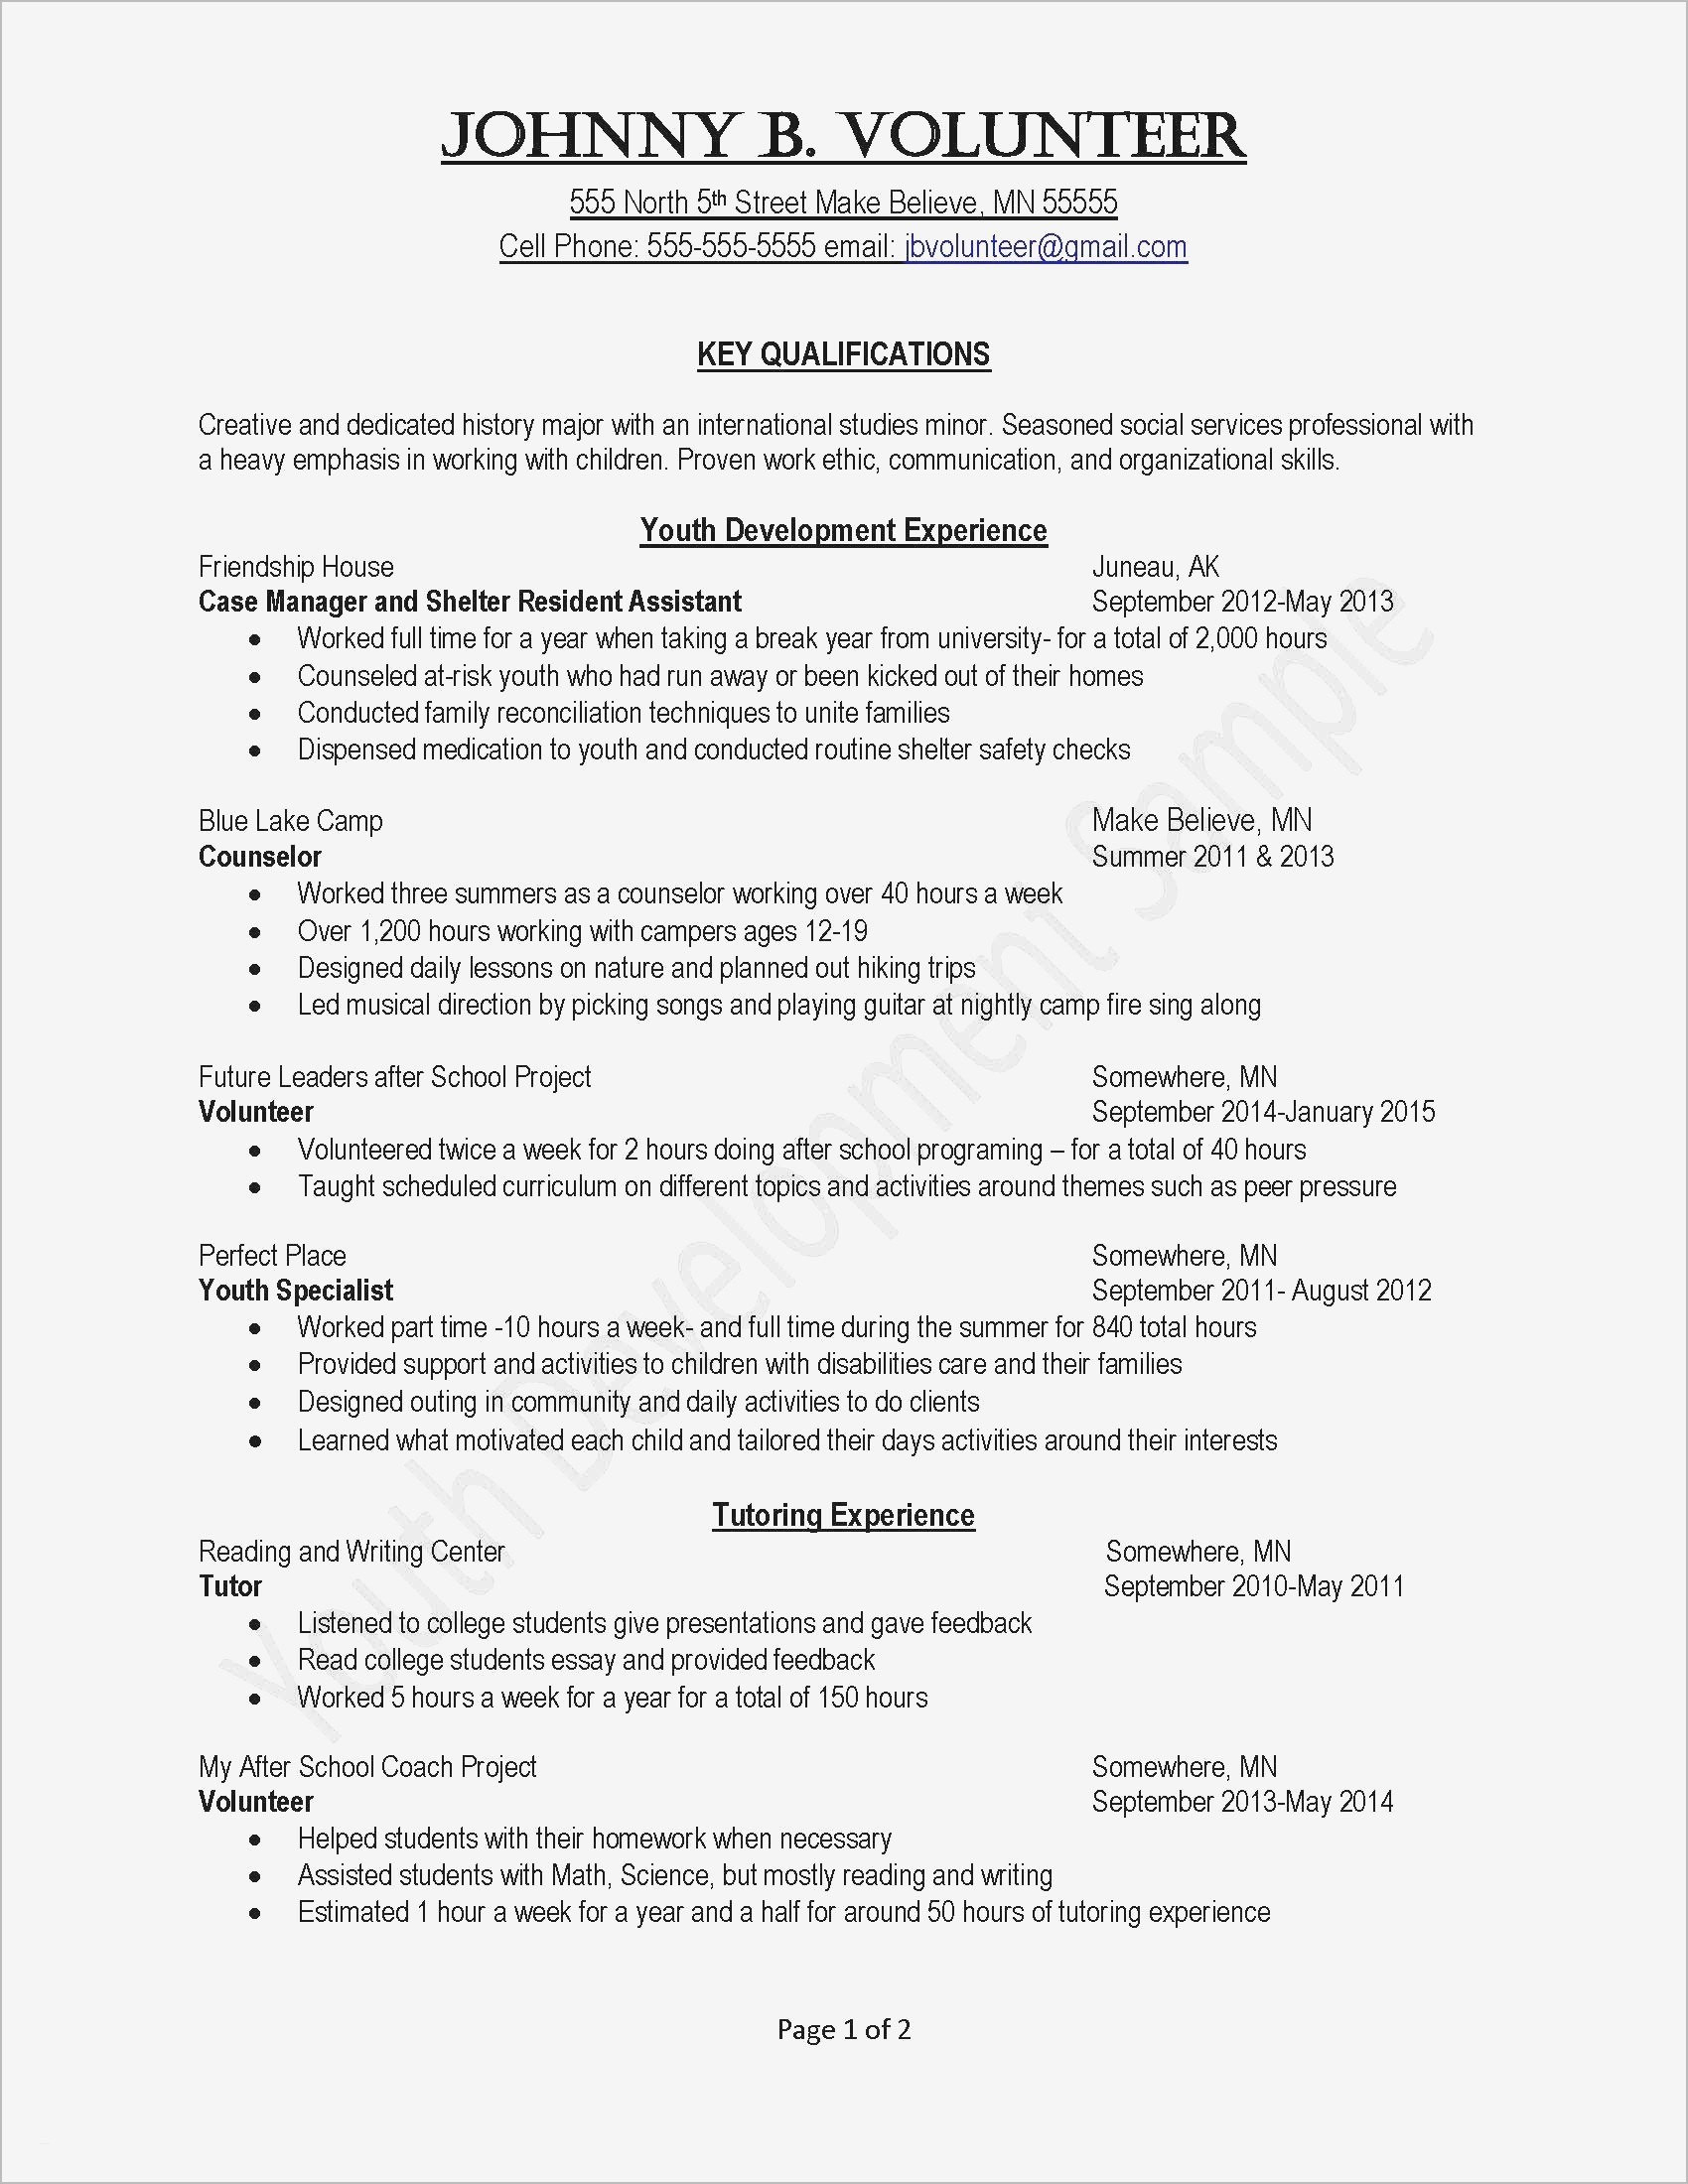 Amazing Cover Letter Template - Free Templates for Resumes and Cover Letters Best Job Fer Letter